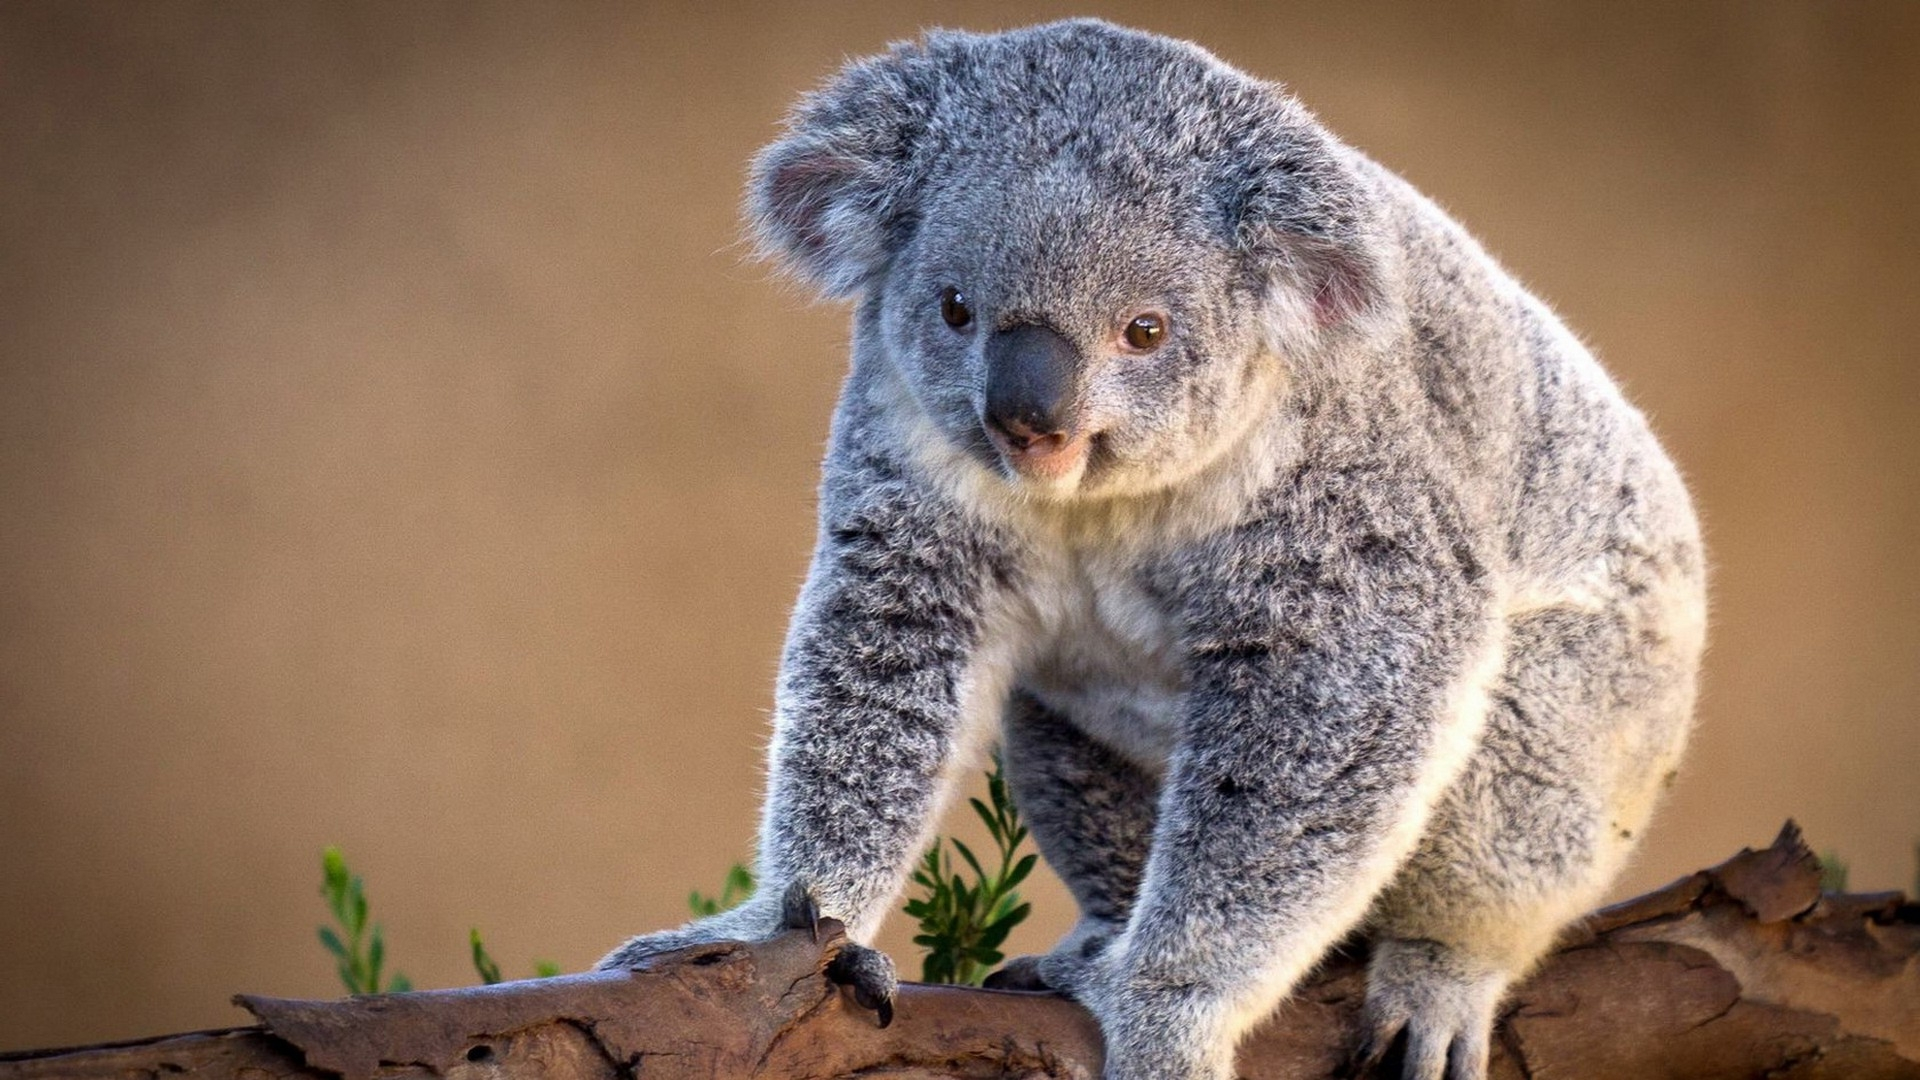 40810 download wallpaper Animals, Koalas screensavers and pictures for free